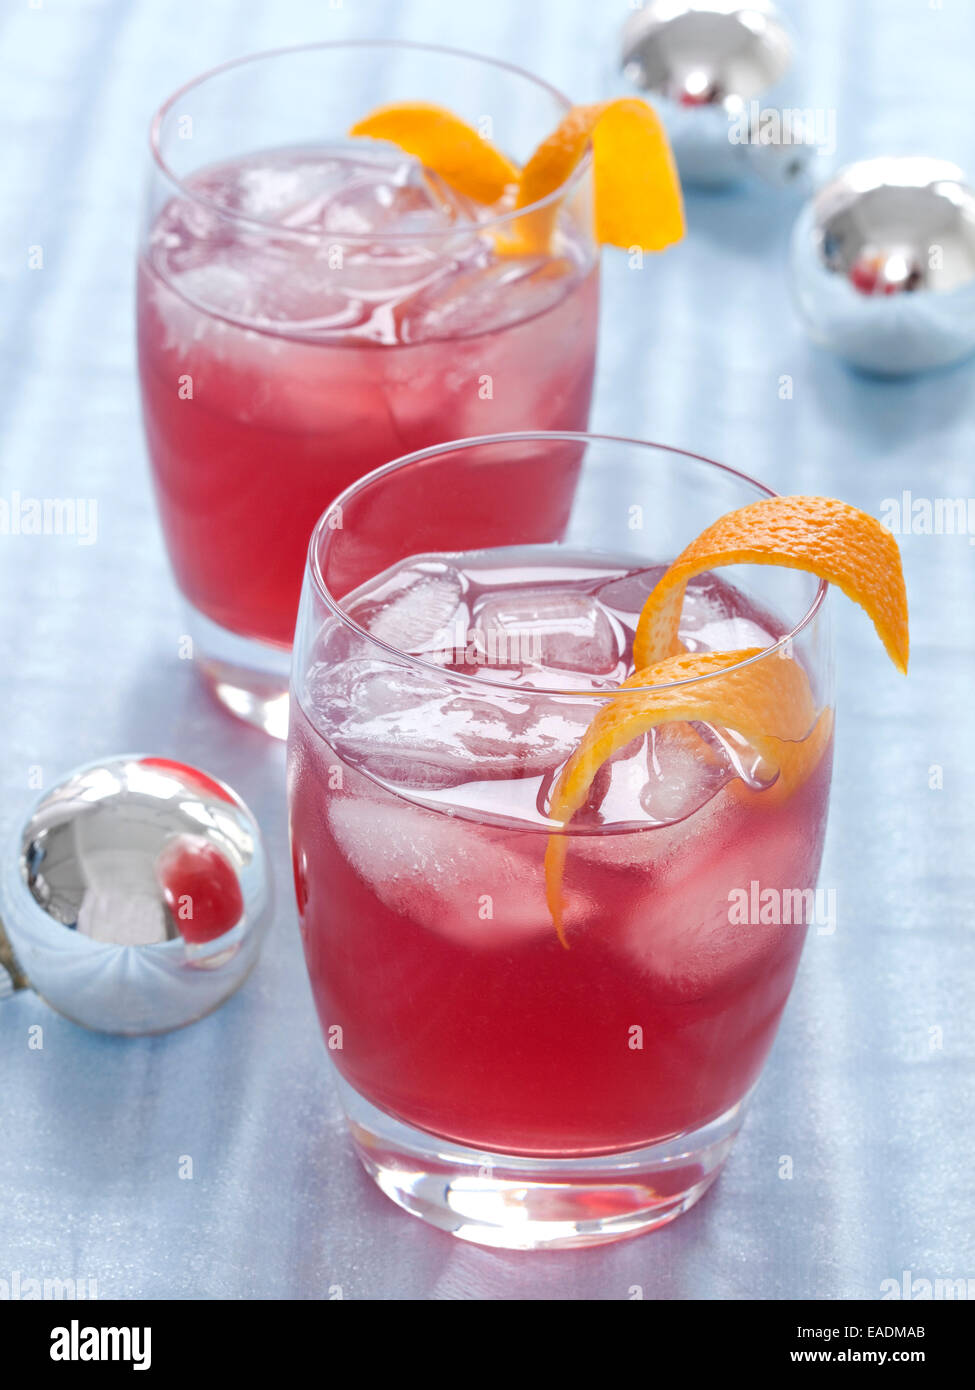 Colorful Holiday Cocktails - Stock Image